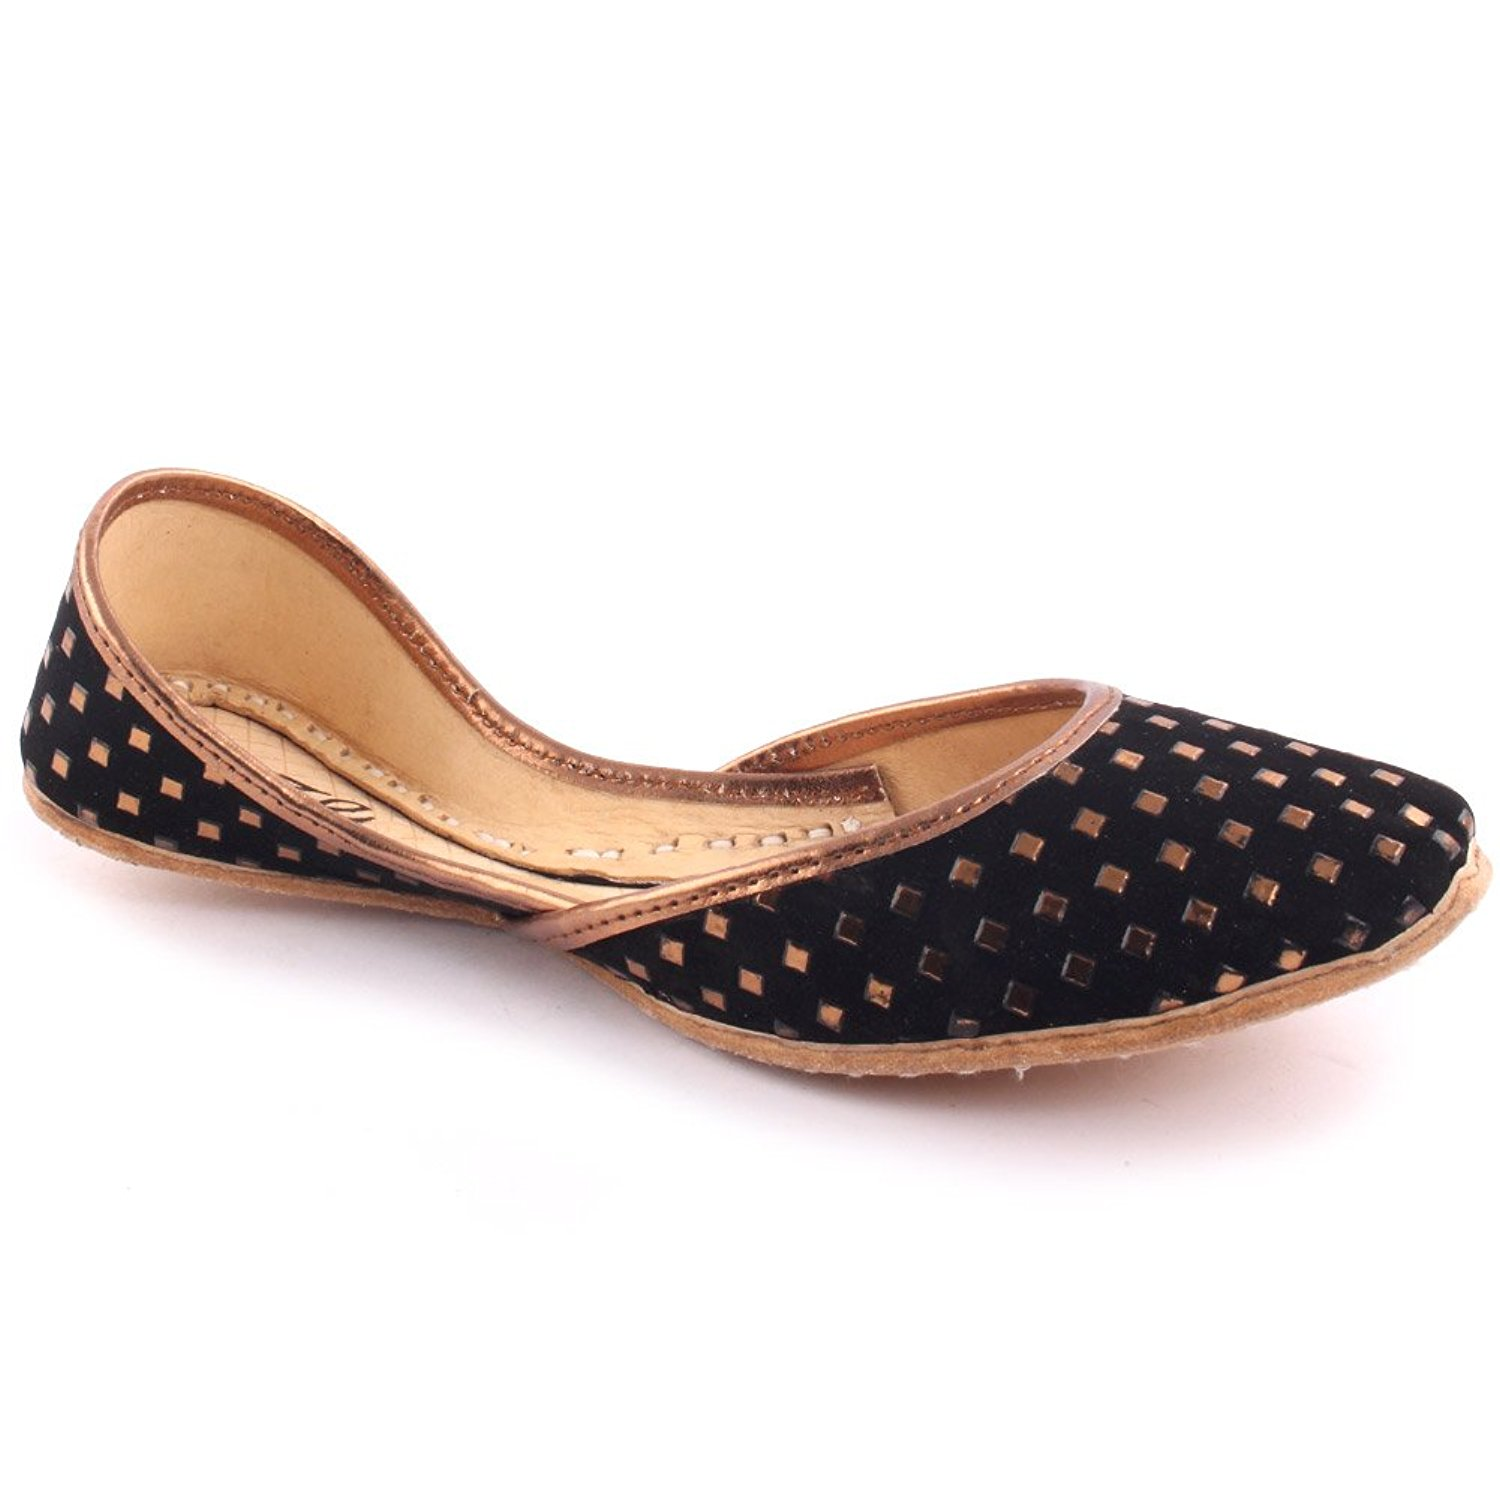 92788f7f15f63f Get Quotations · Unze Women Ladies Traditional Angra Block Print Metallic  Indian Casual Leather Flat Khussa Slippers Shoes UK